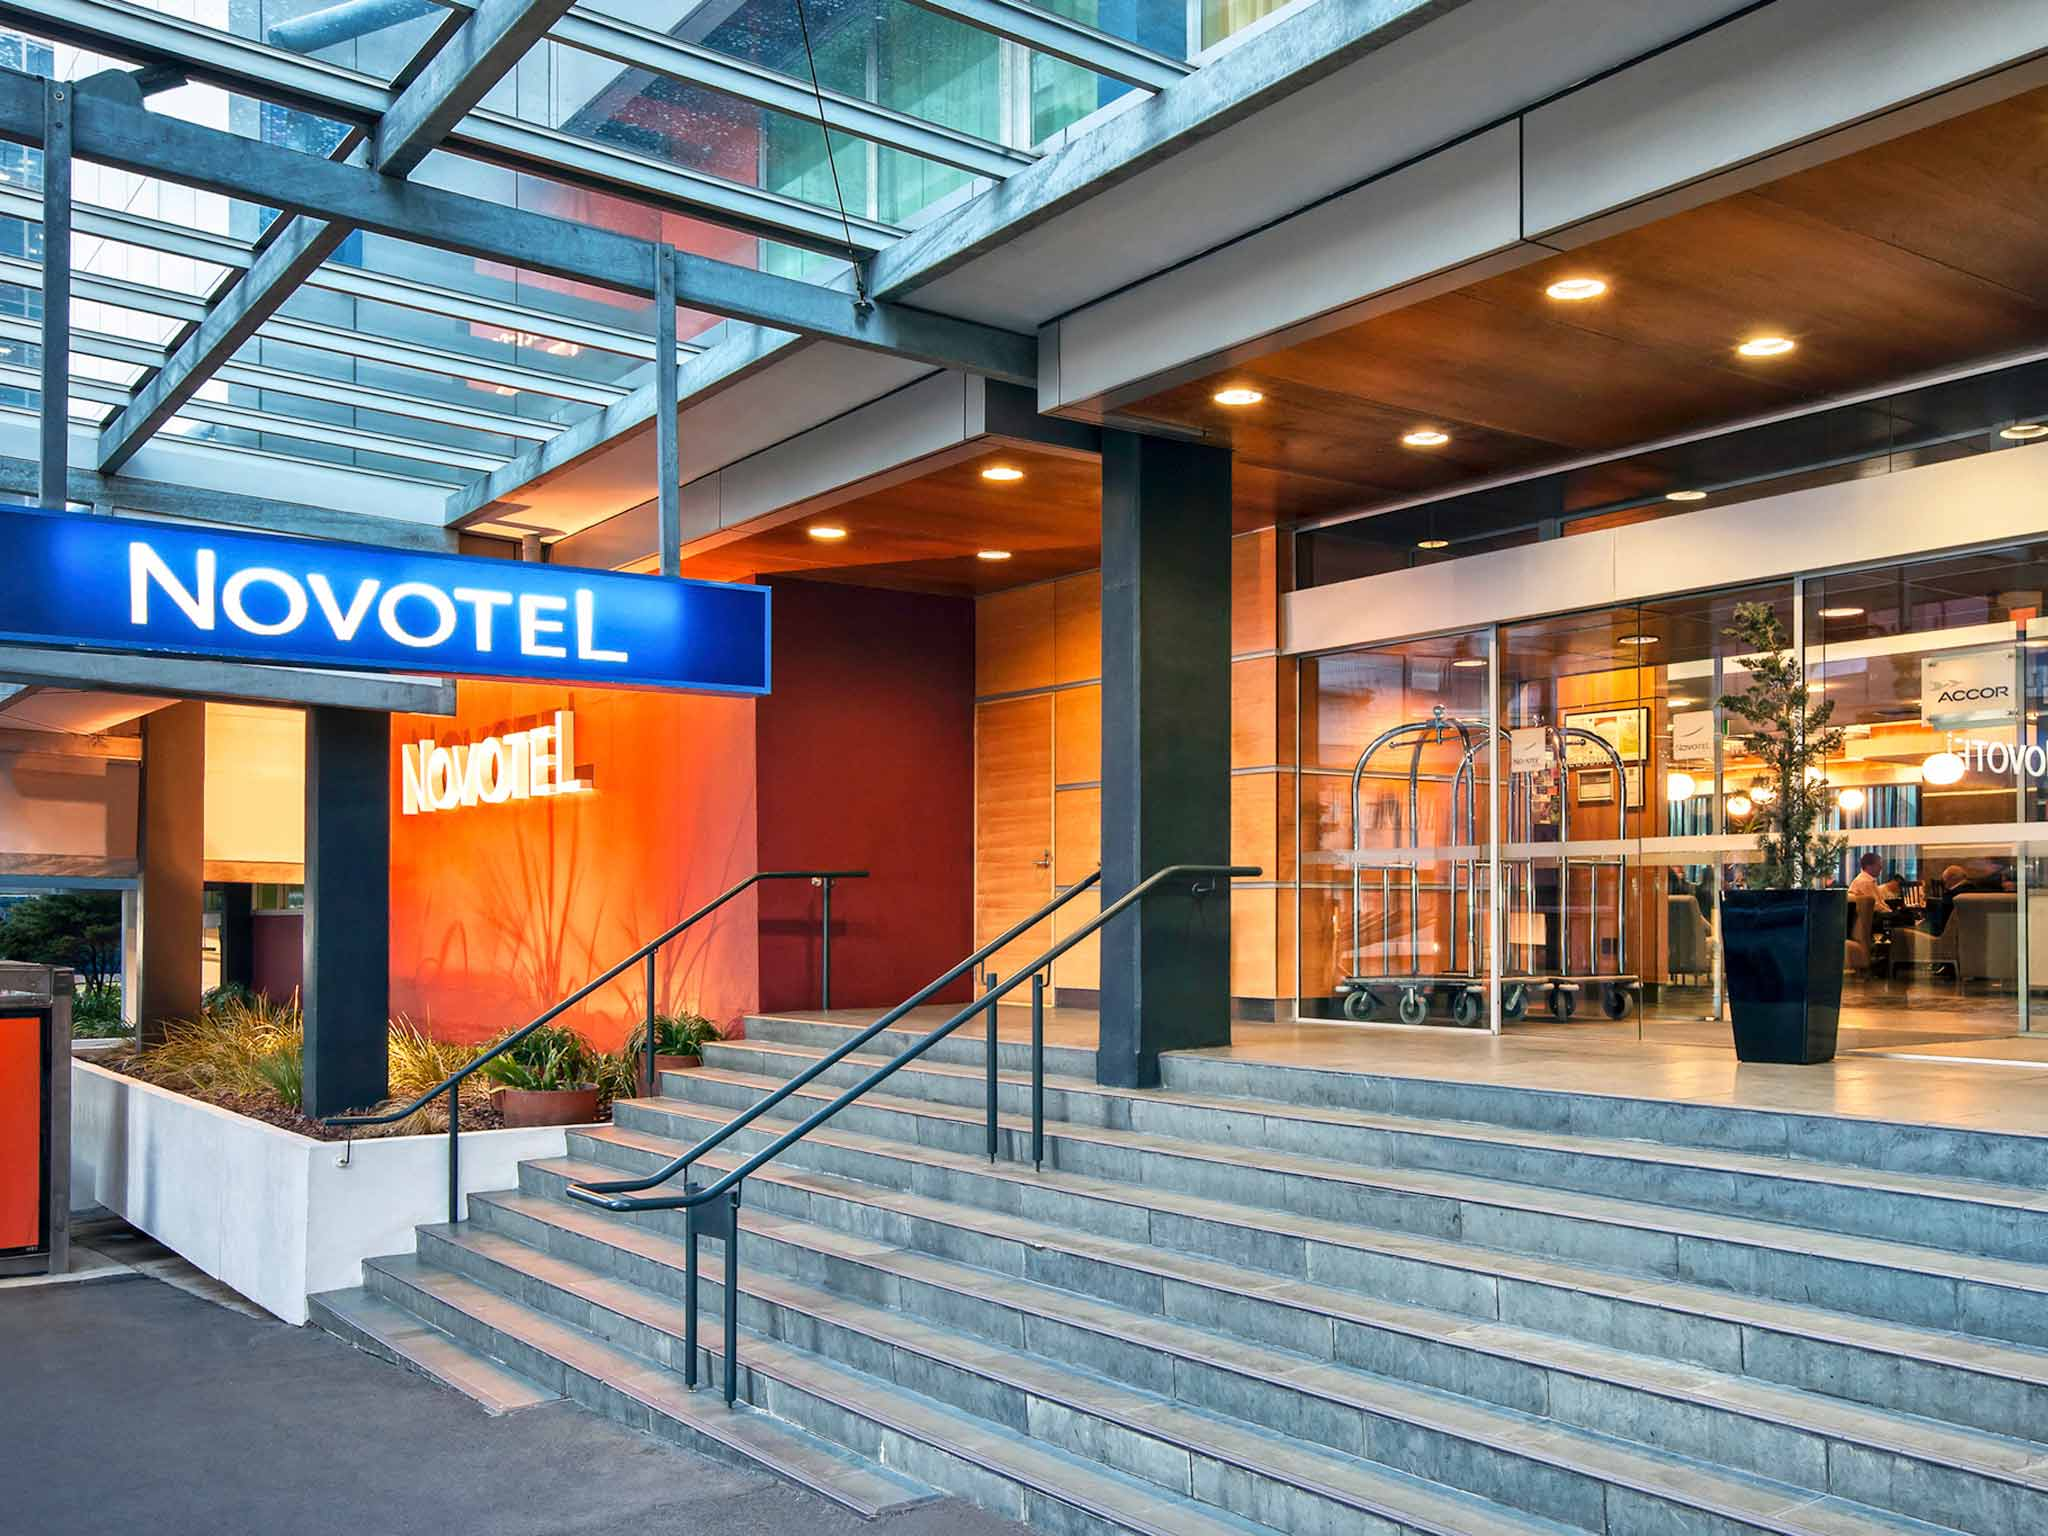 Novotel Capital Wellington Vista exterior